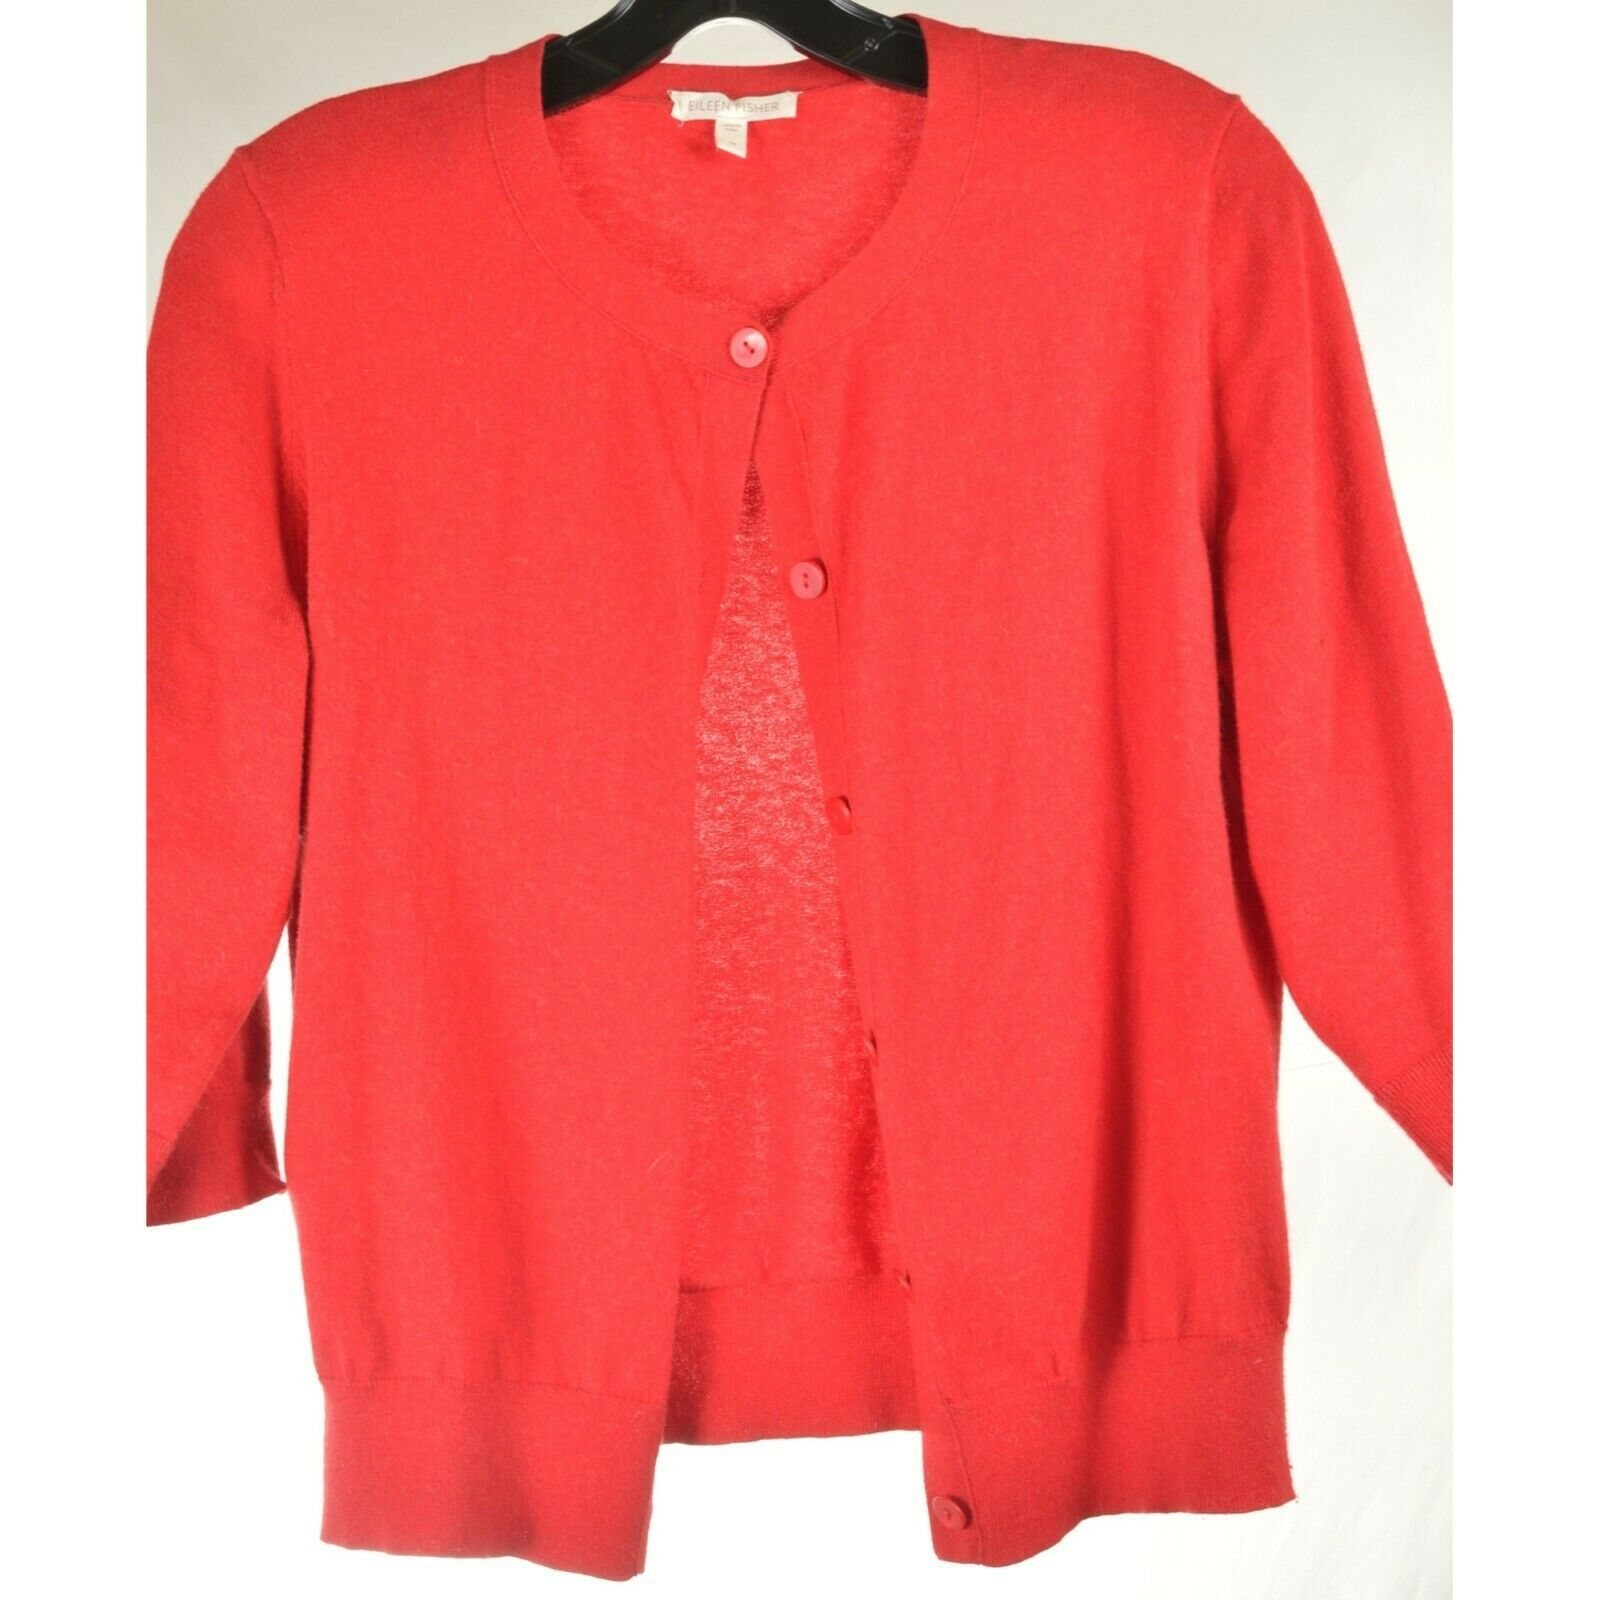 Eileen Fisher sweater M red cardigan 3/4 sleeves organic cotton cashmere blend image 4